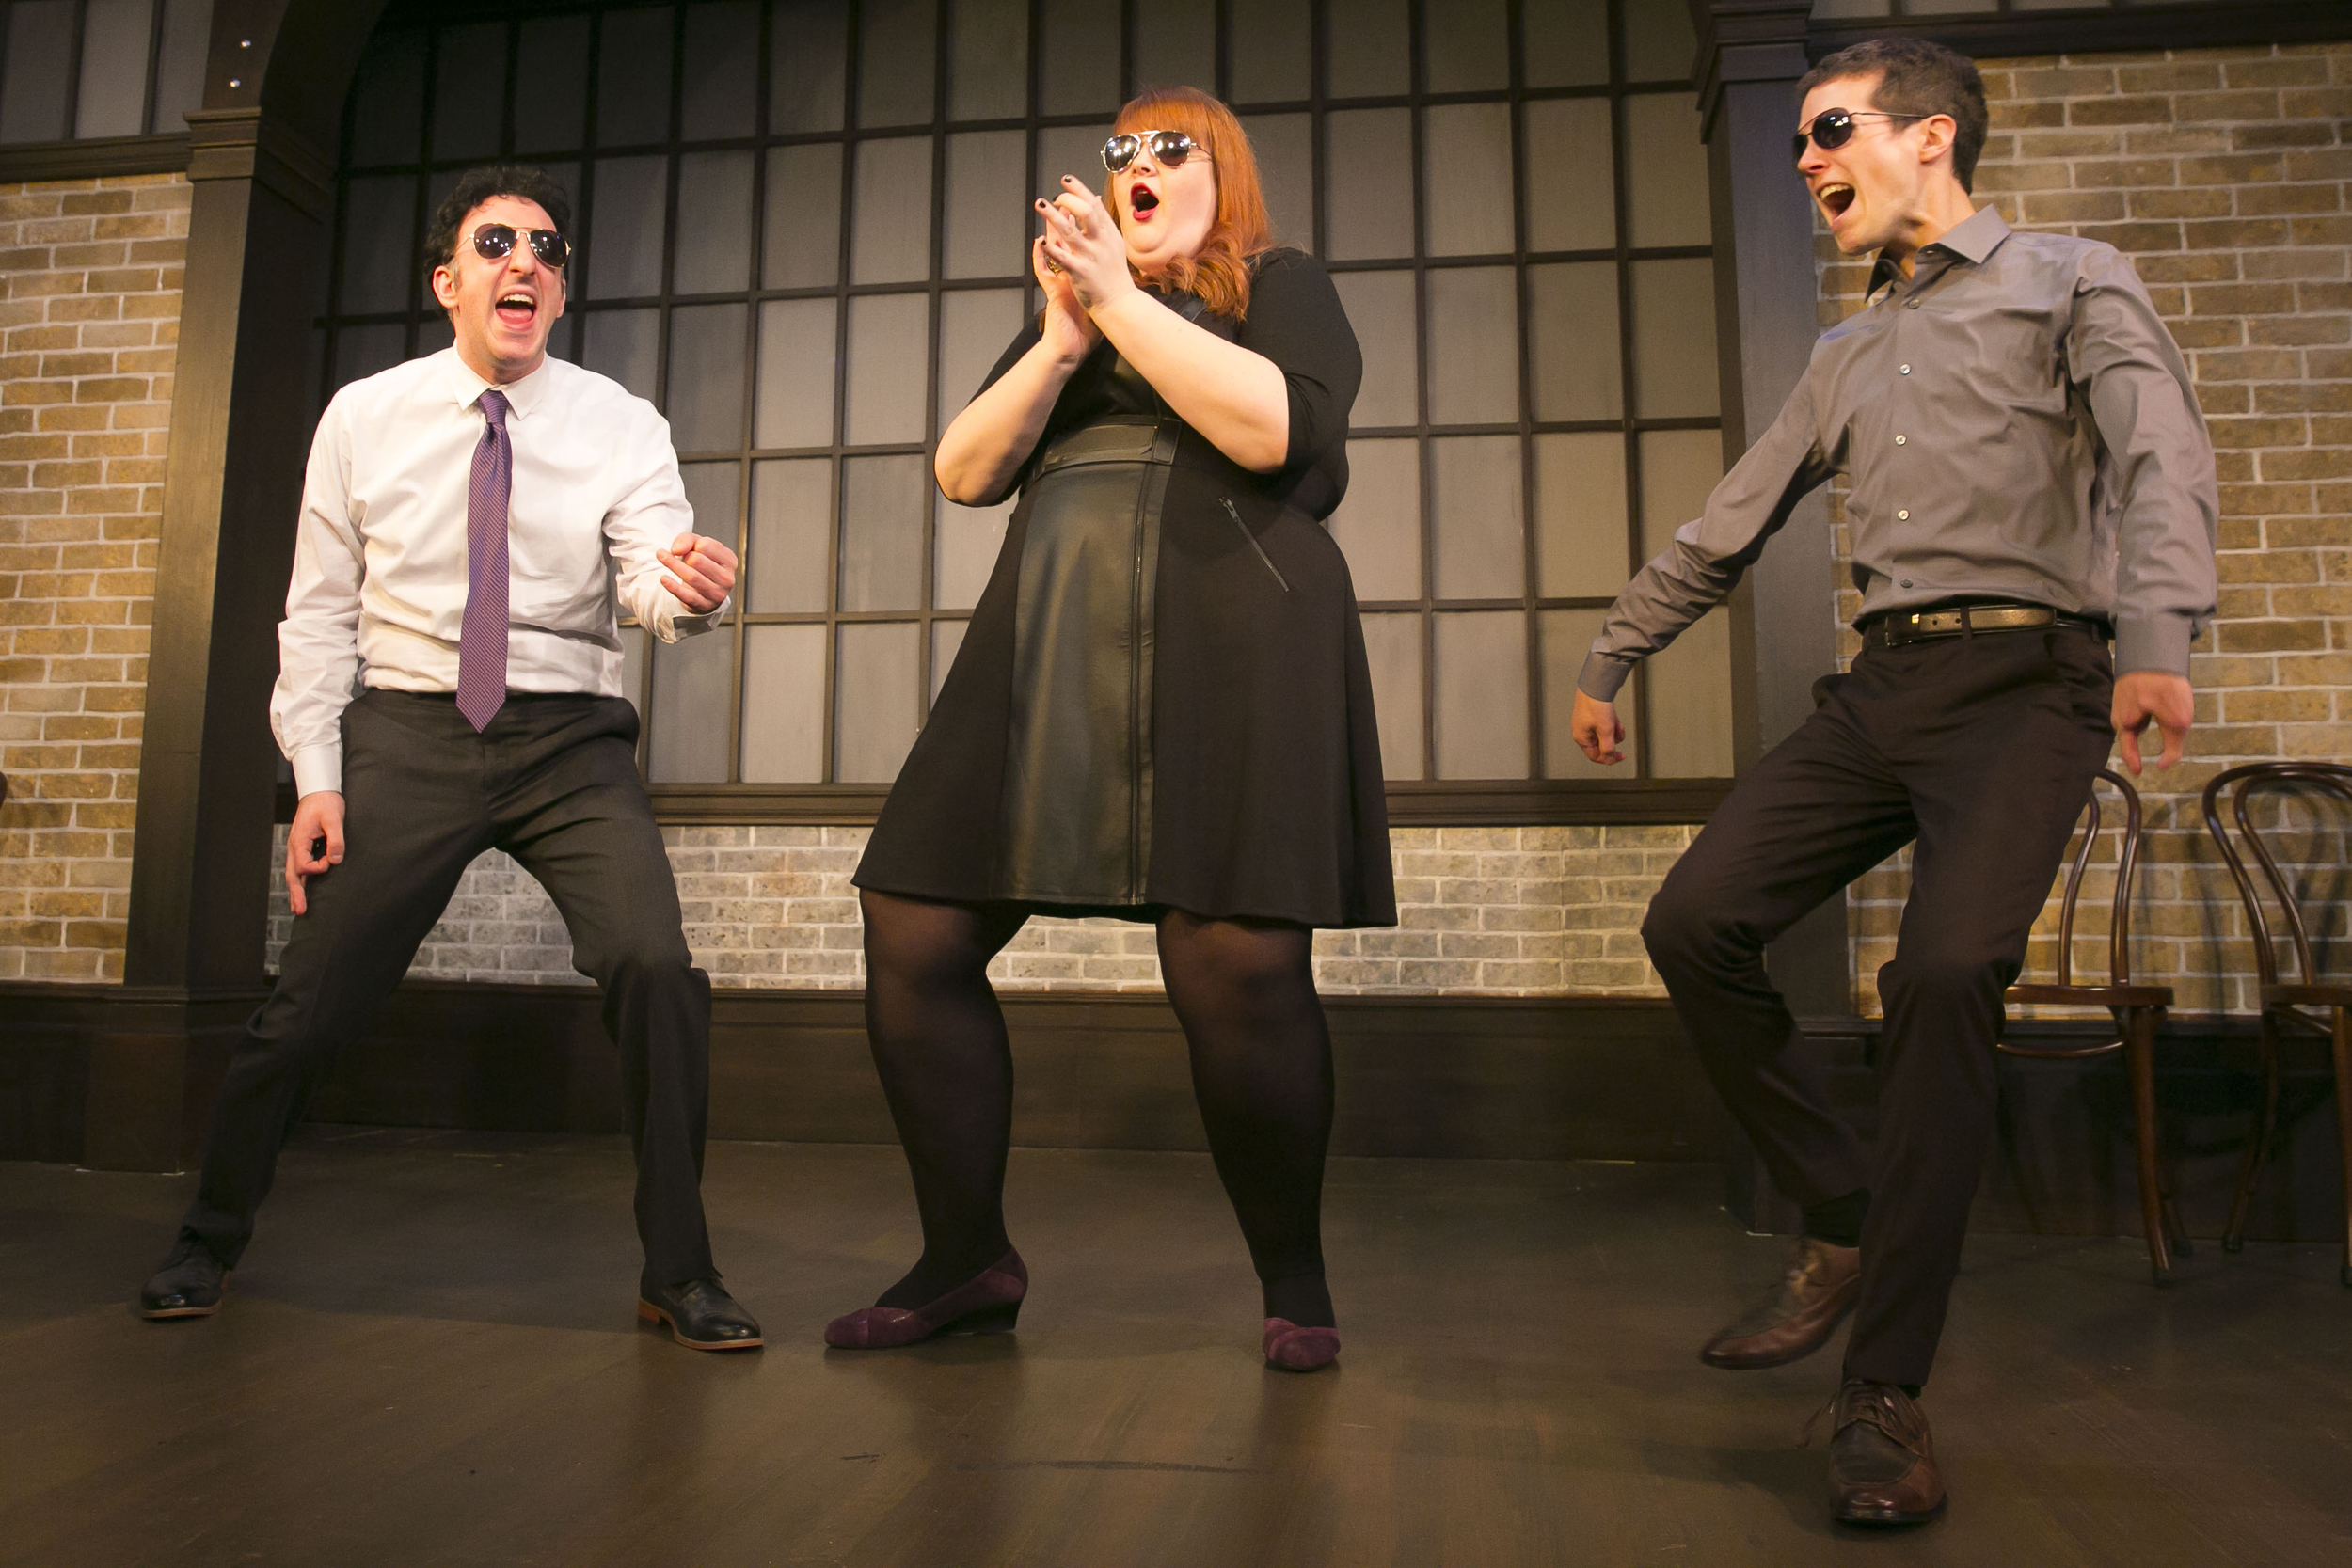 Daniel-Strauss-Emily-Walker-and-John-Hartman-in-Second-City's-PANIC-ON-CLOUD-9.-Photo-by-TODD-ROSENBERG..jpg